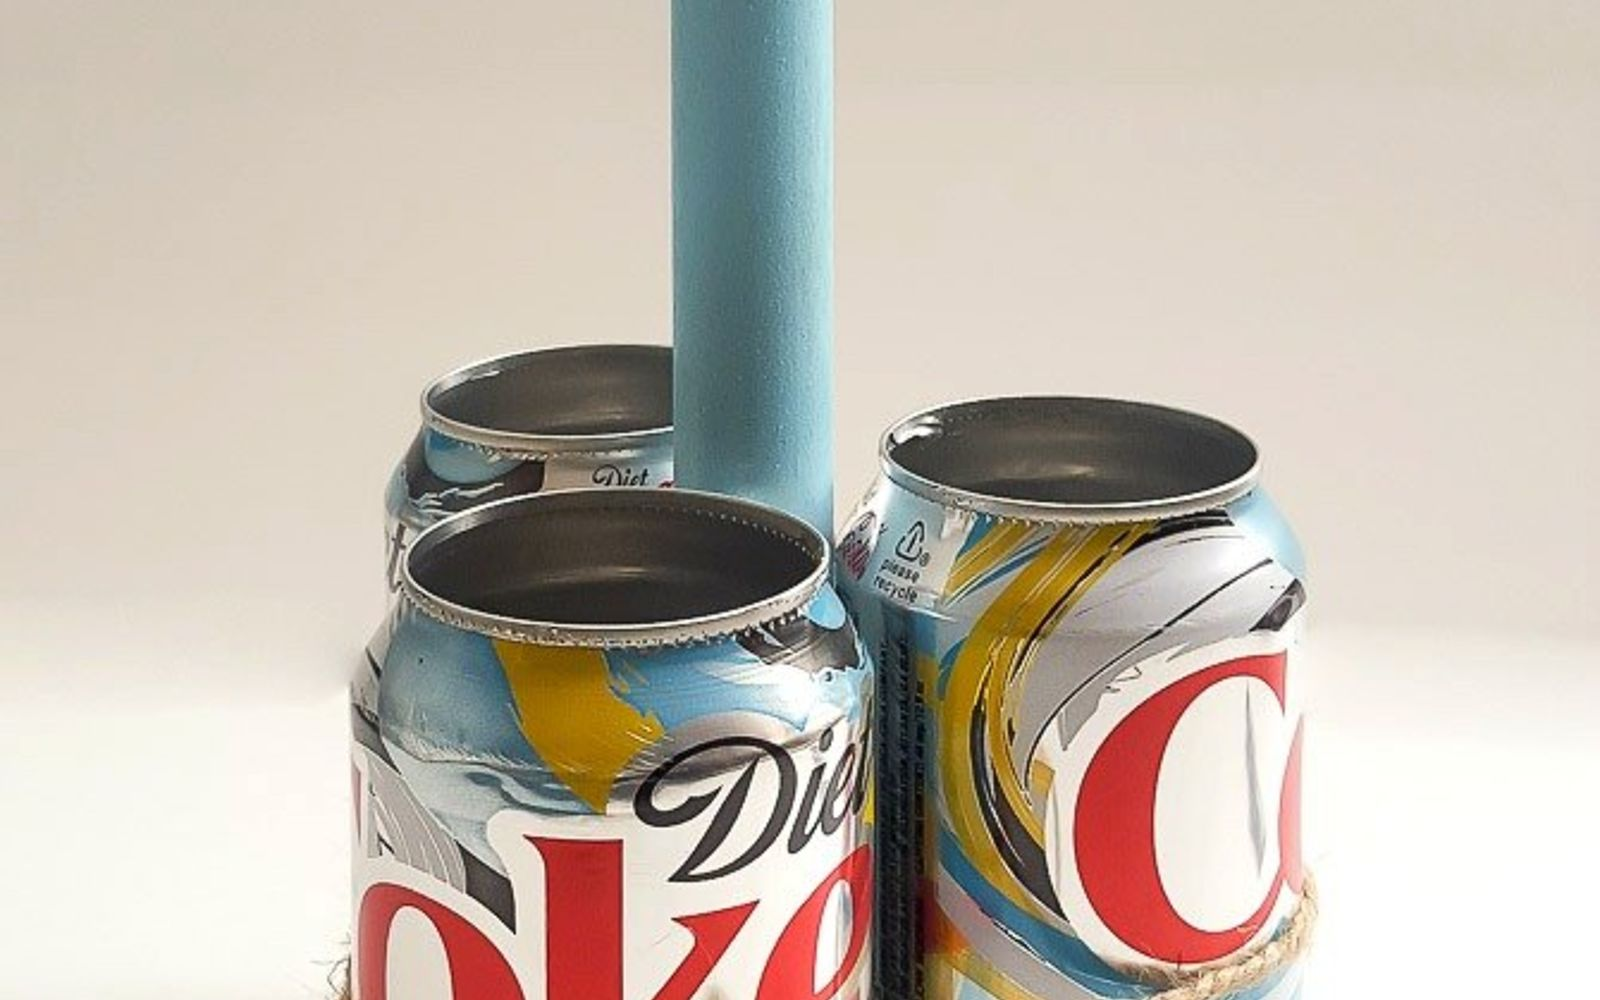 s save your old cans for these 30 home decor ideas, Upcycle them into a crafty caddy